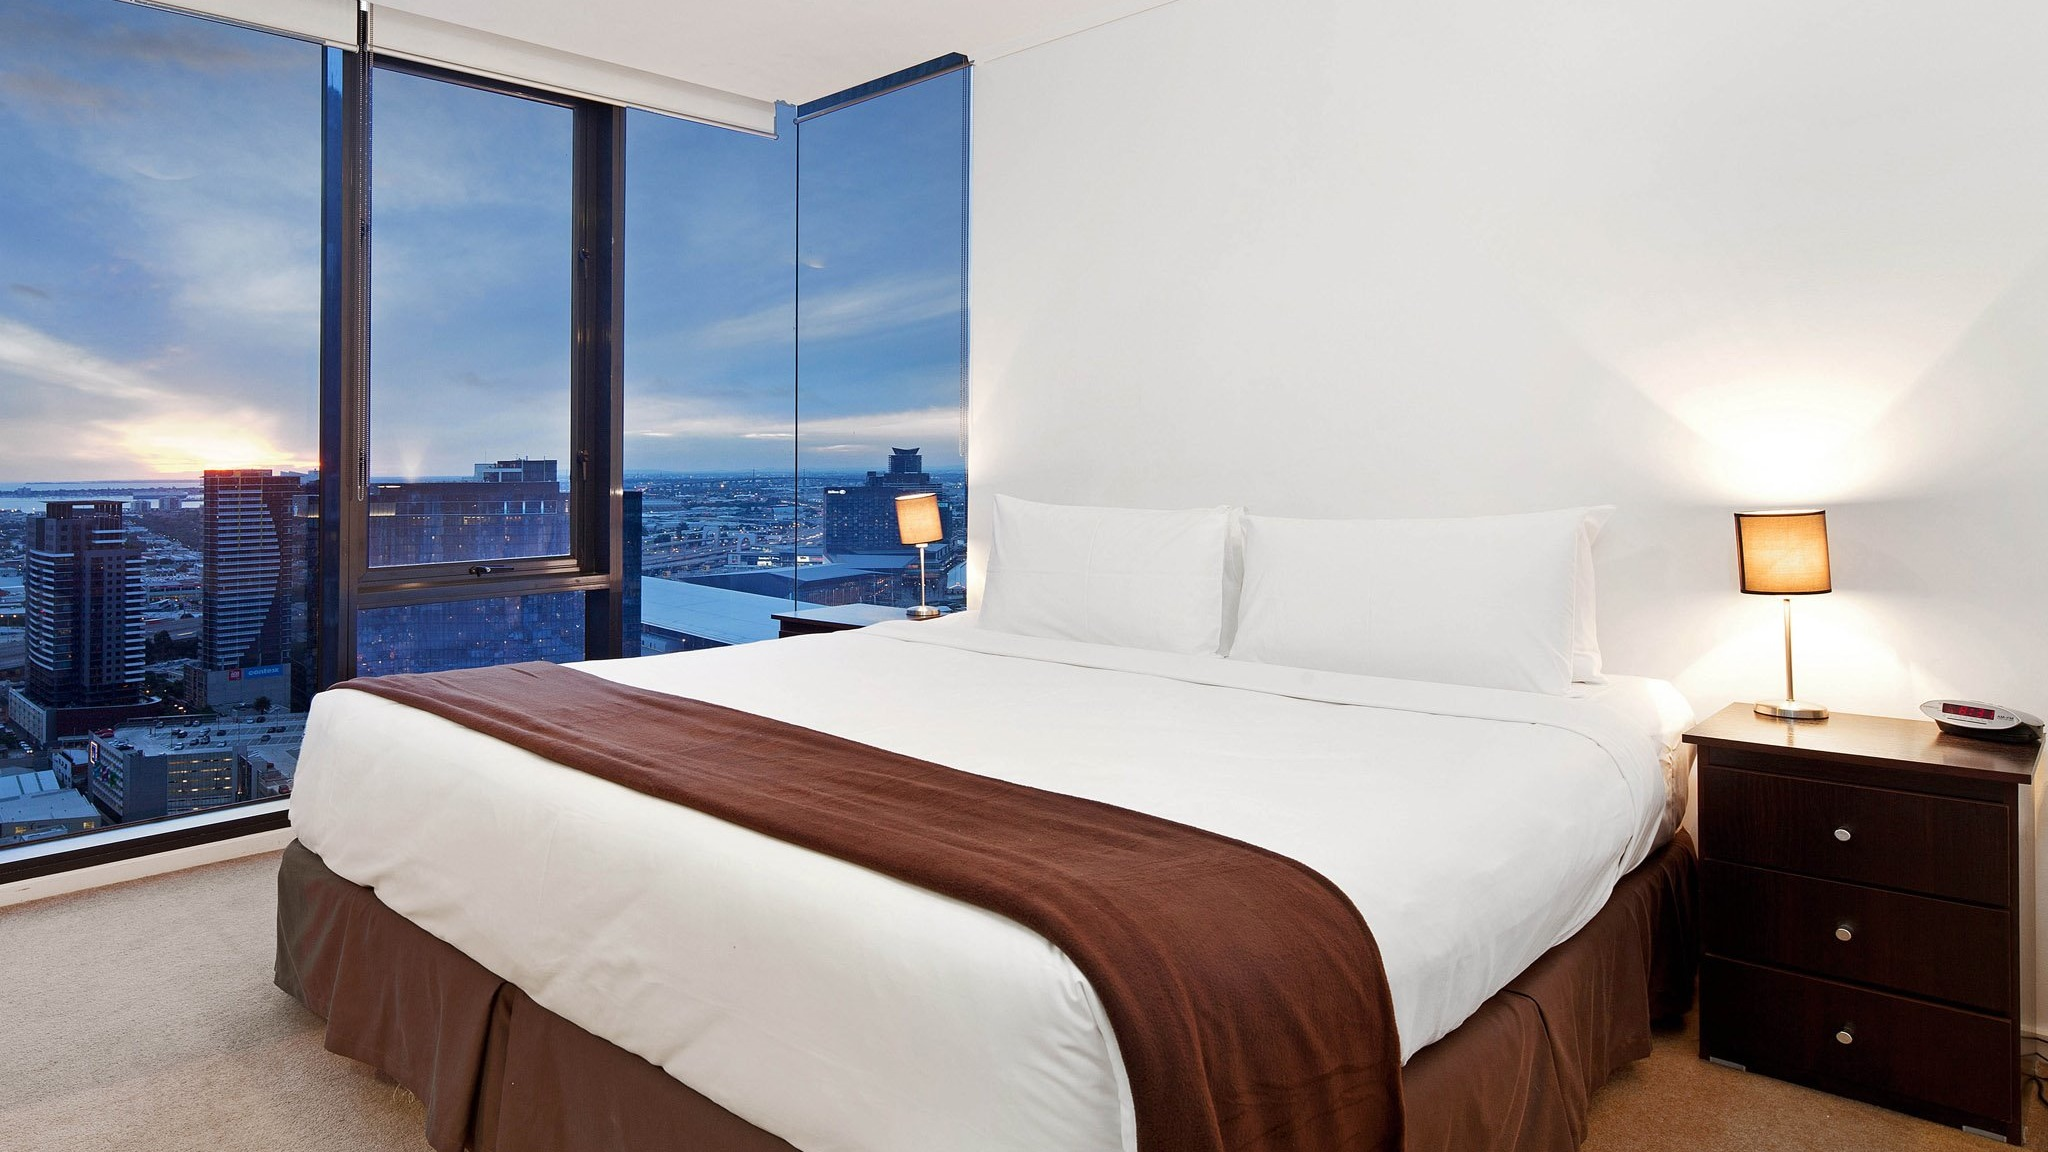 Master Bedroom with views over Yarra River and Melbourne City